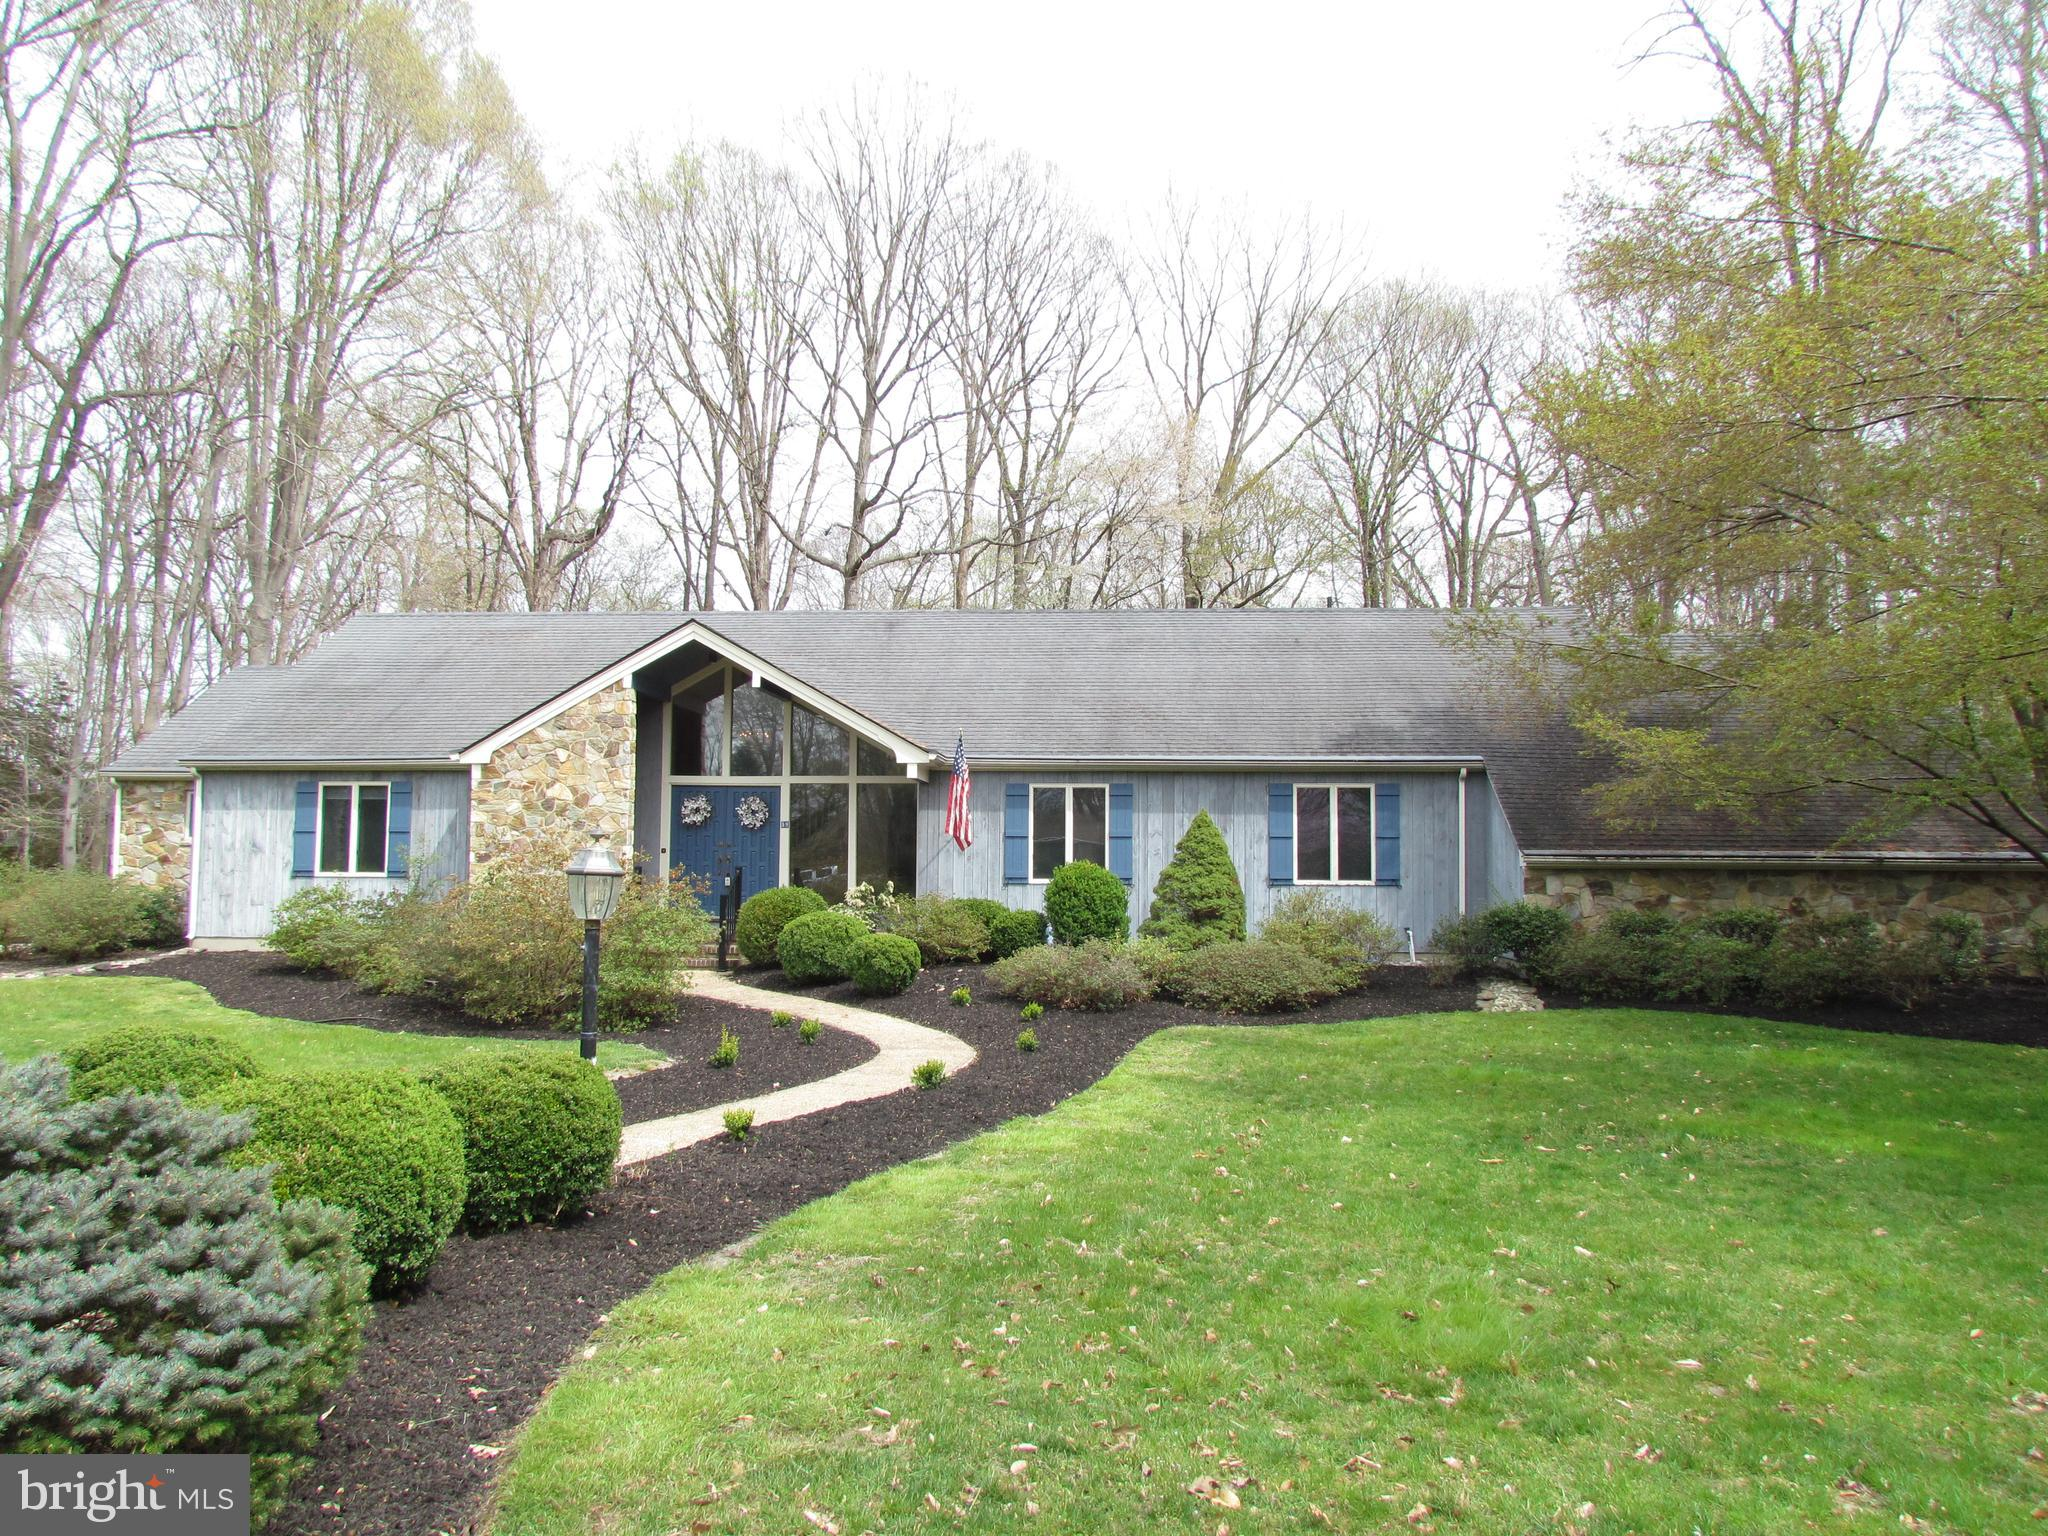 This beautiful custom home is nestled in a quiet culde sac.  The beautiful landscaped lawn invites you into the stone front entrance.  Open the door to an open two story foyer.  The living room and dining room is light and airy and has beautiful hardwood flooring.  The family room is expansive with a cathedral ceiling and a floor to ceiling stone fireplace with nice windows letting the natural light inside.  Step out to the the heated and cooled sun room to enjoy the outdoors from inside with skylights to make it cheerful and bright.  The large kitchen has an abundance of counter and cabinet space, Viking double wall ovens, a cook-top, and a quiet Bosch dishwasher.  Steps from the kitchen is a half bath, office and mudroom.  The master suite is on the first floor with his and her vanities a whirlpool, and separate shower.  The finished basement has two large rec areas and a bedroom with an outside egress, and a full bath.  Outside you will find a lovely outdoor entertainment area with a built in stone grill.  The lot is beautiful and private.  Don't miss the opportunity to view this great home!